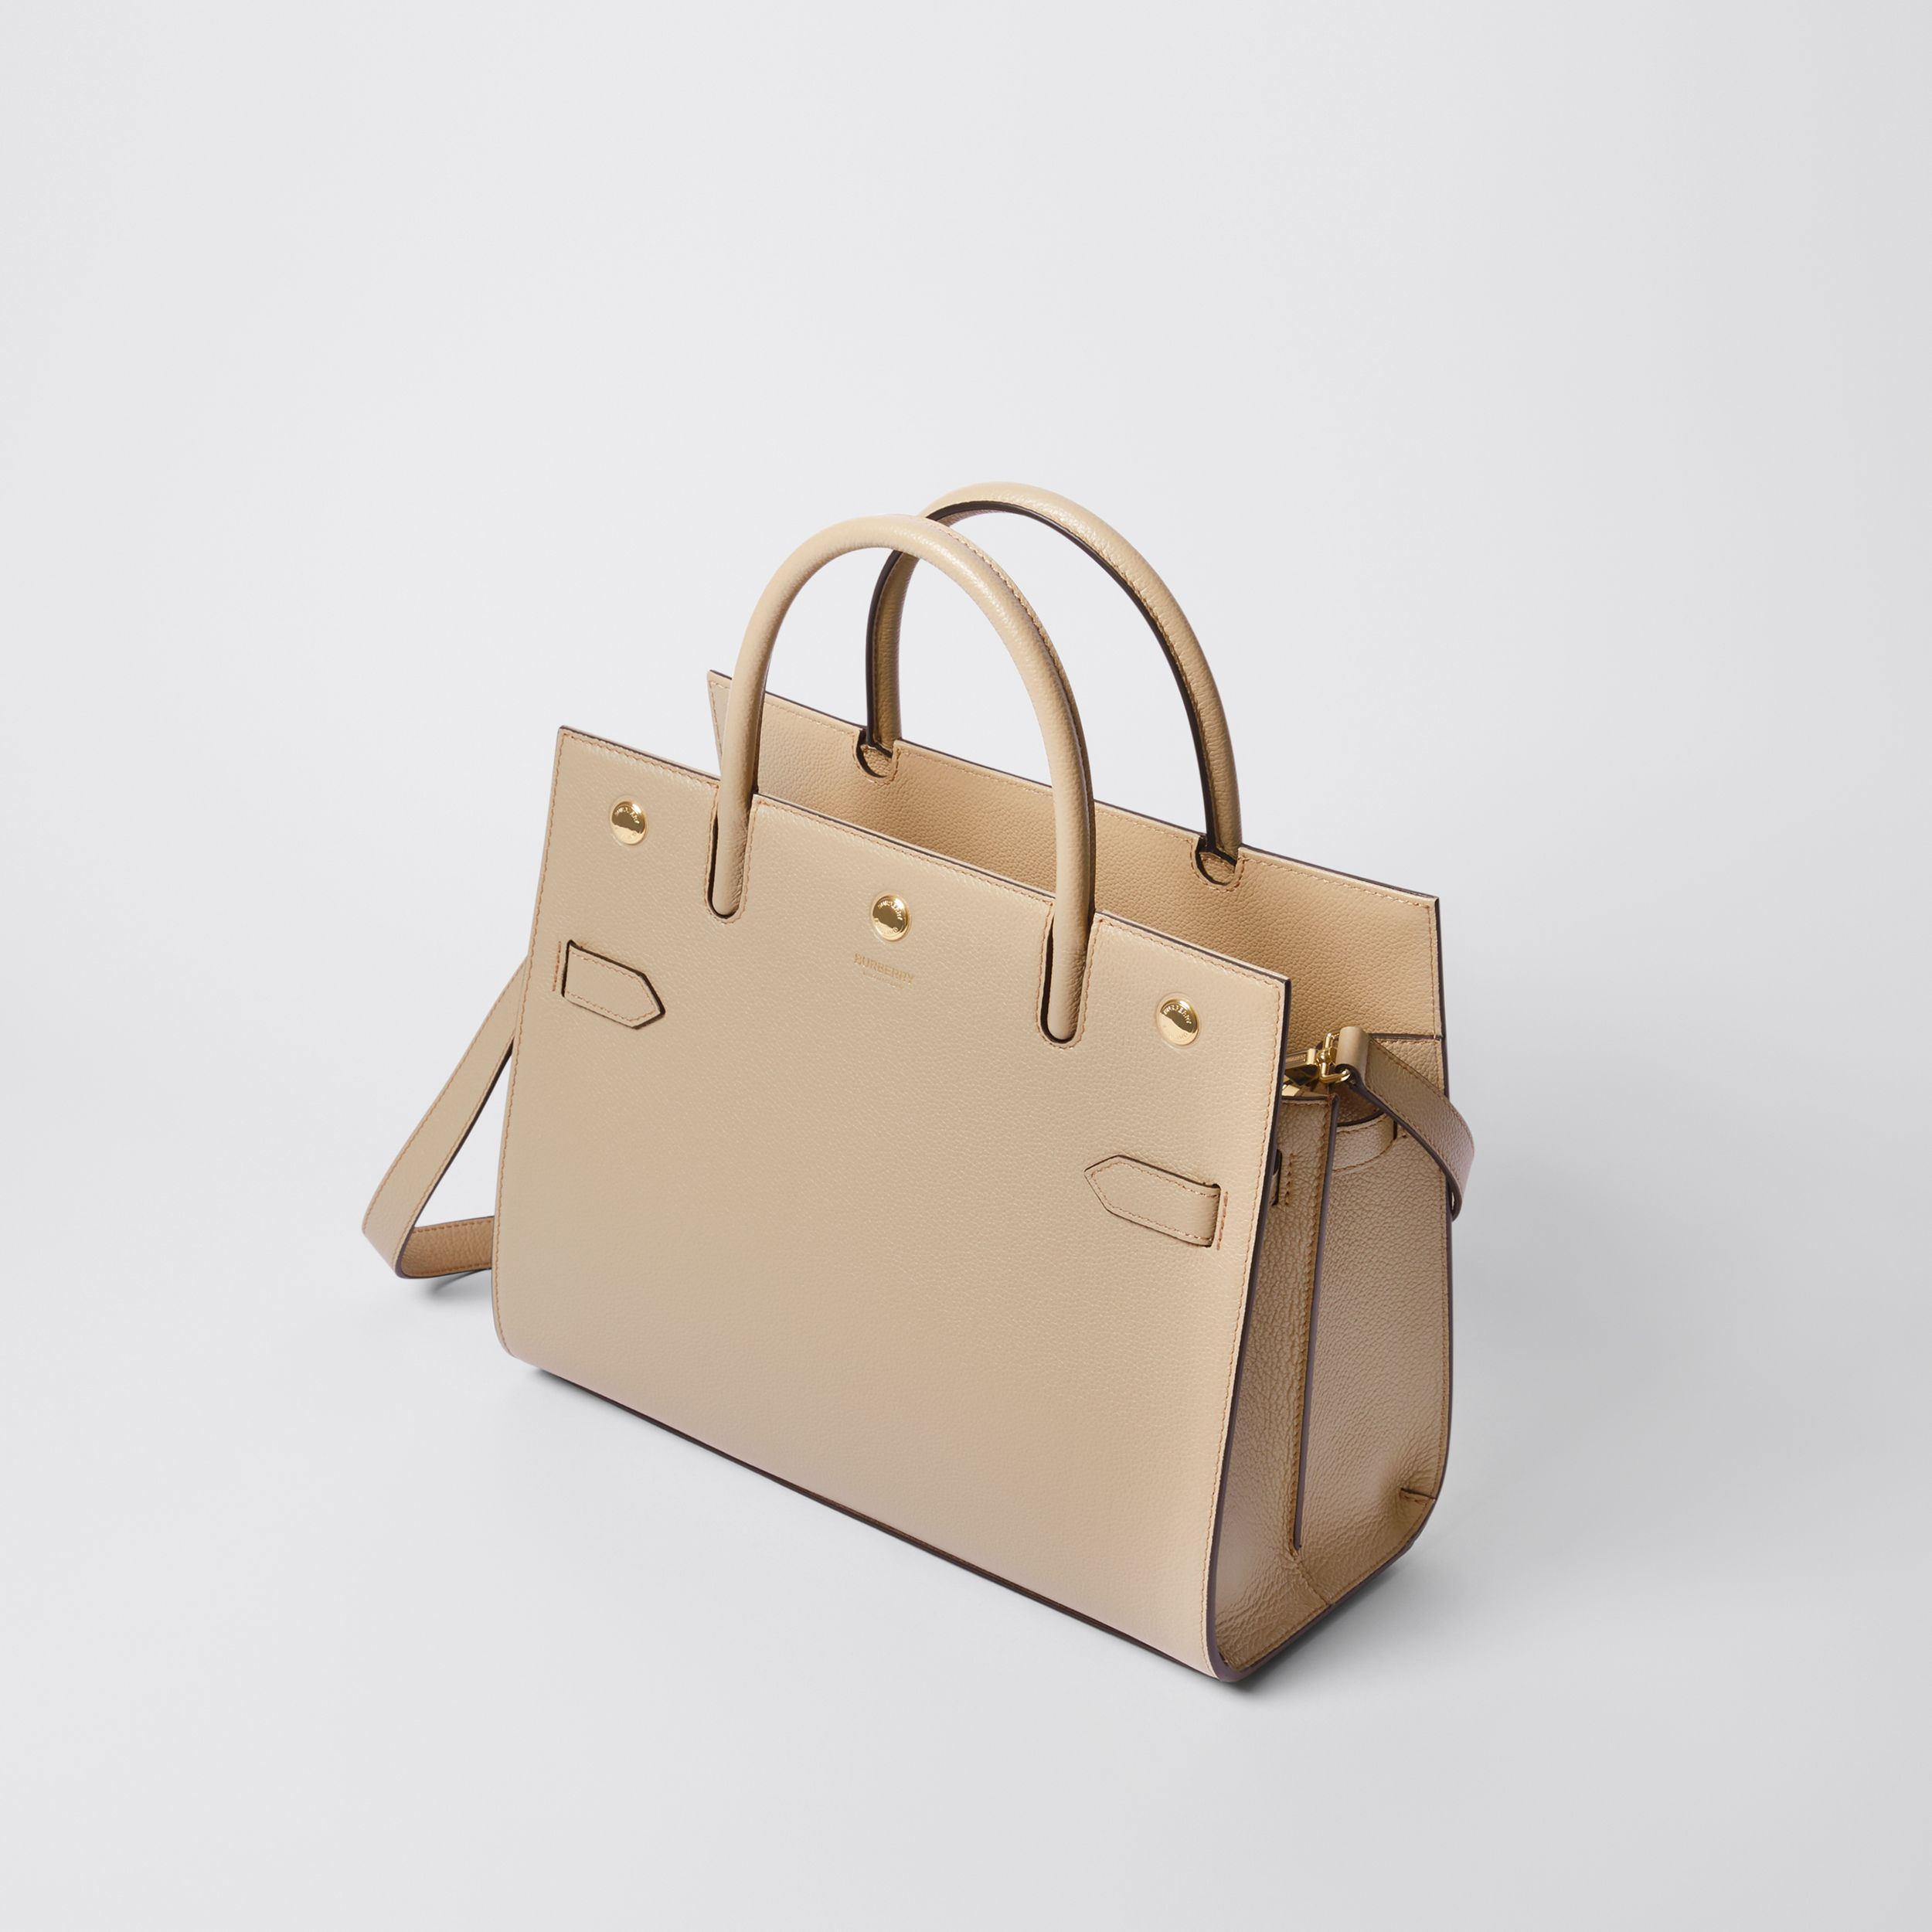 Small Leather Two-handle Title Bag in Light Beige - Women | Burberry - 4